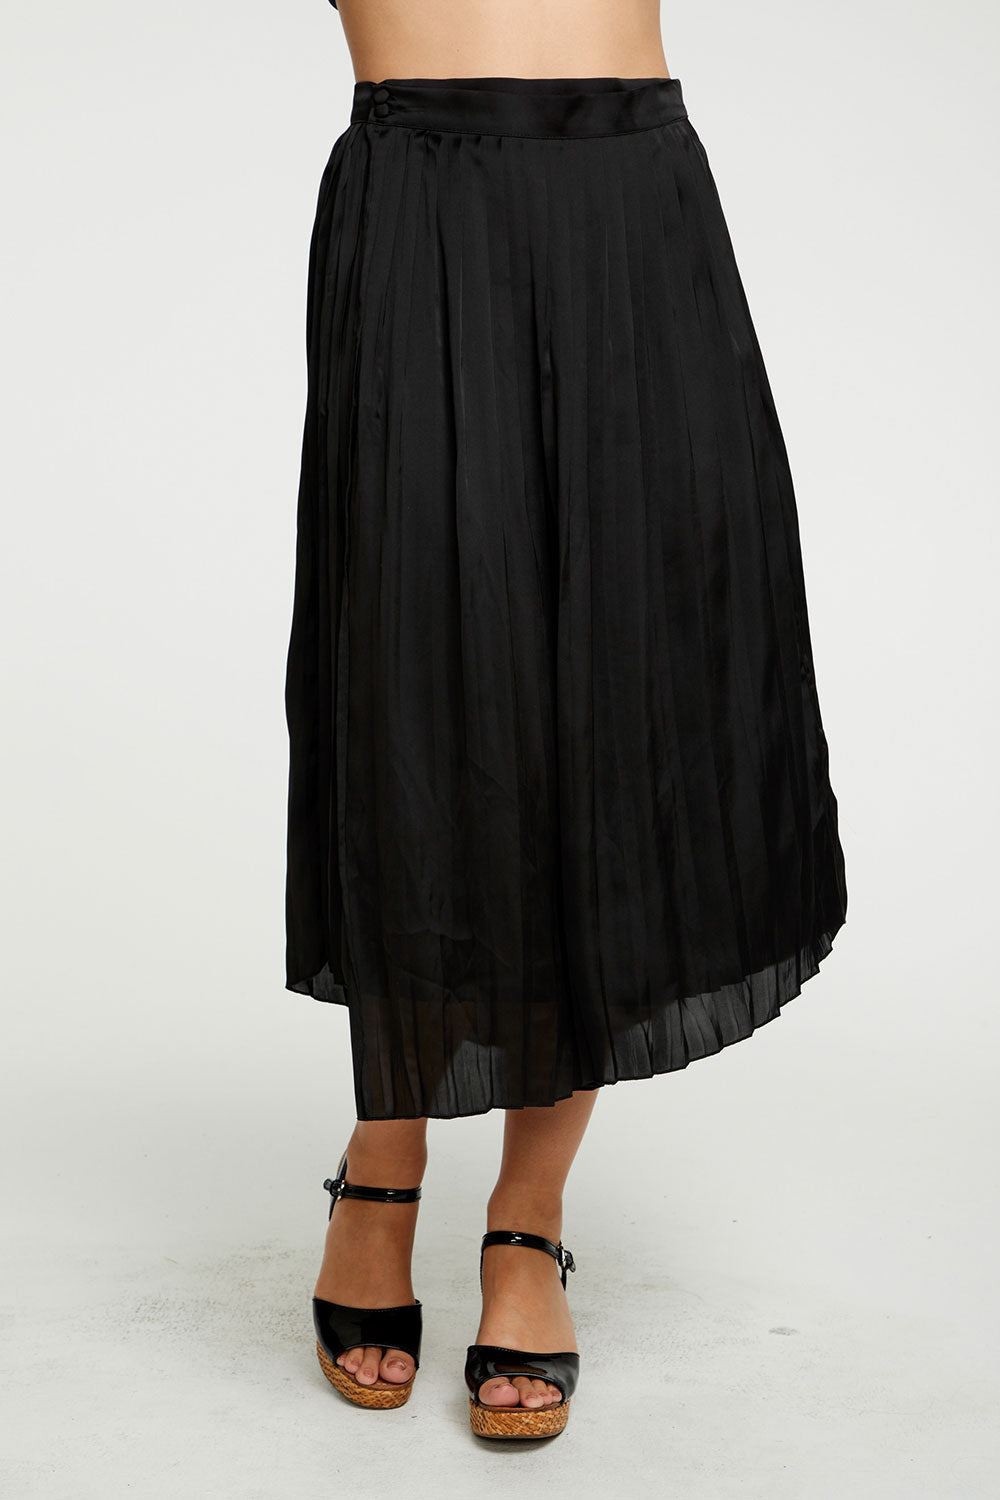 Silky Basics Pleated Asymmetrical Wrap Midi Skirt, WOMENS, chaserbrand.com,chaser clothing,chaser apparel,chaser los angeles